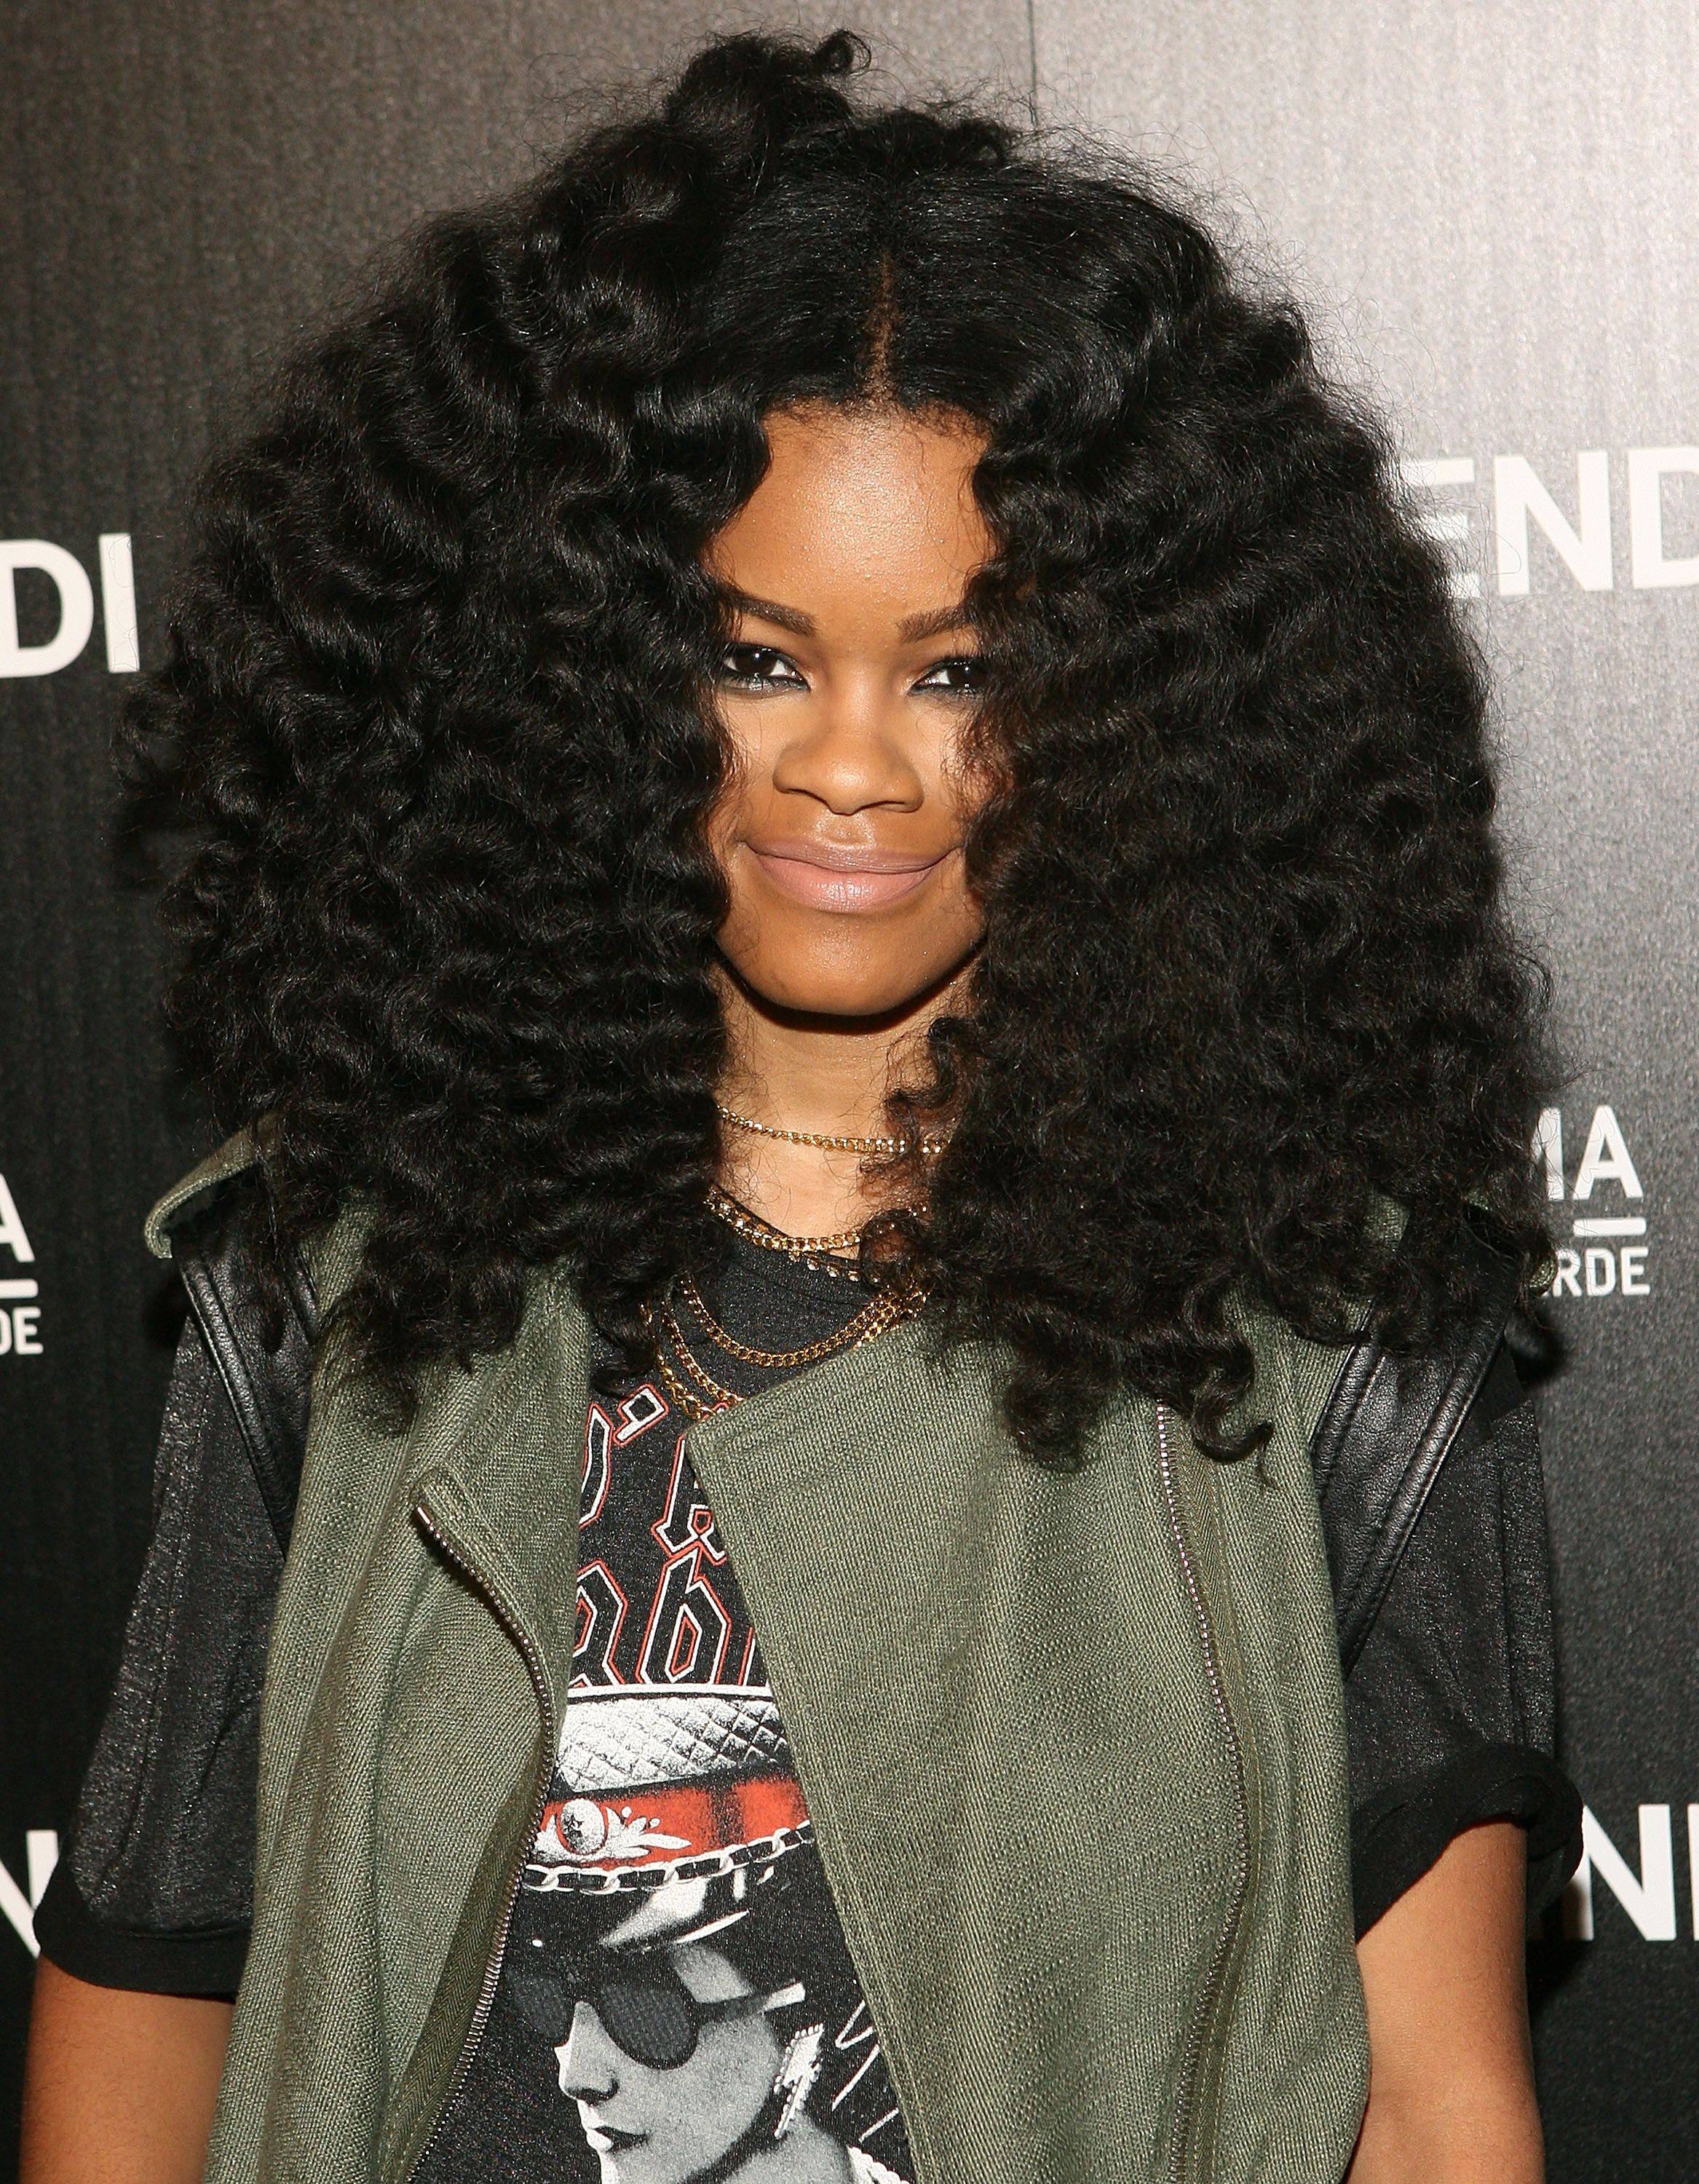 25+ easy natural hairstyles for black women - ideas for short